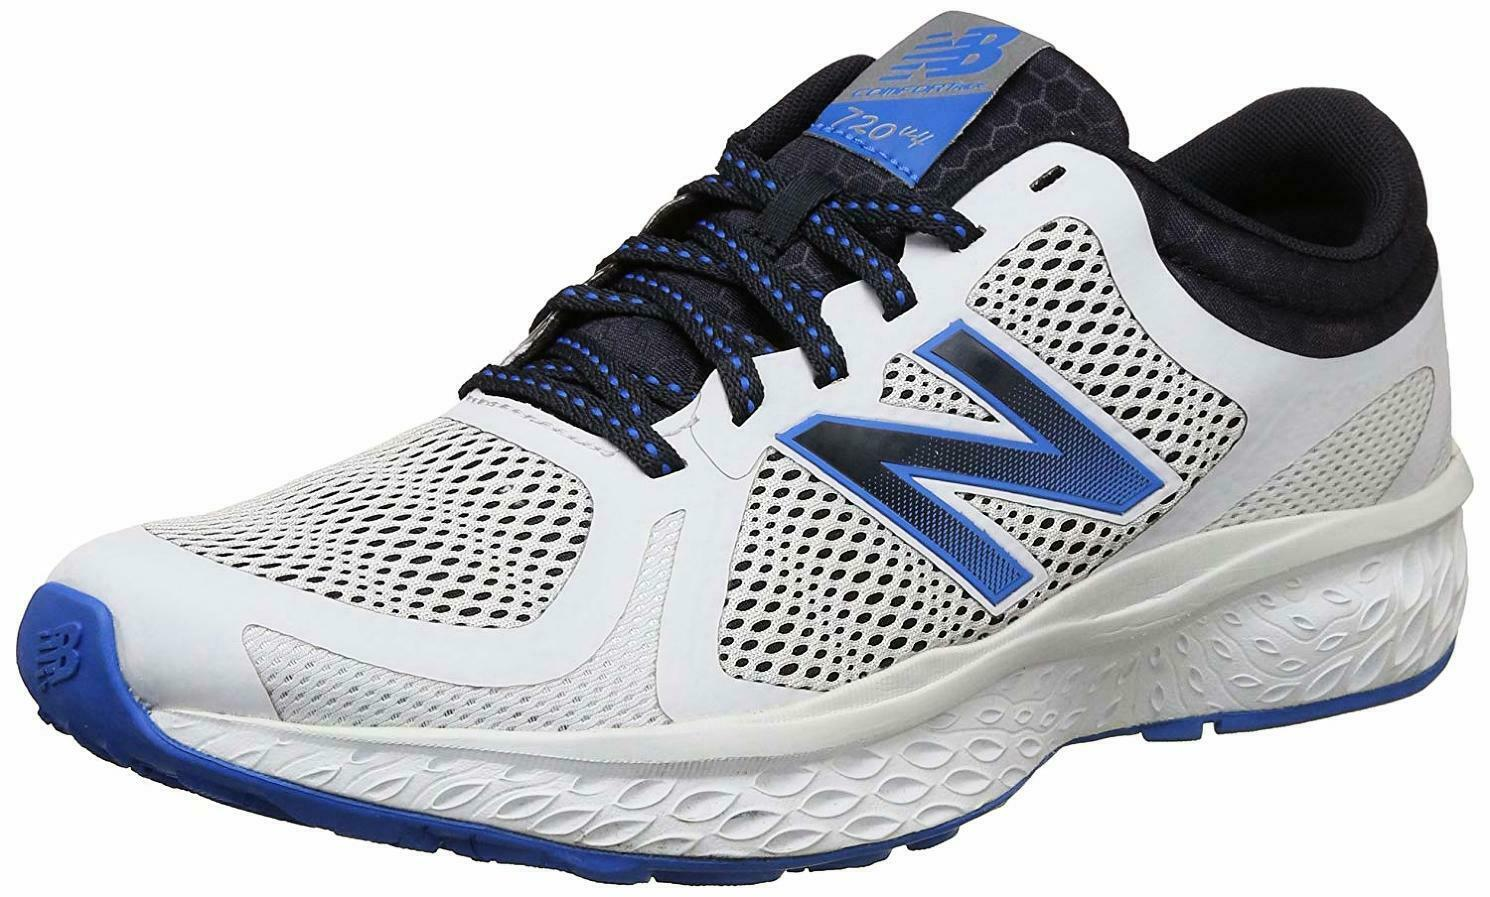 New Balance Men's M720v4 Running shoes - Choose SZ color